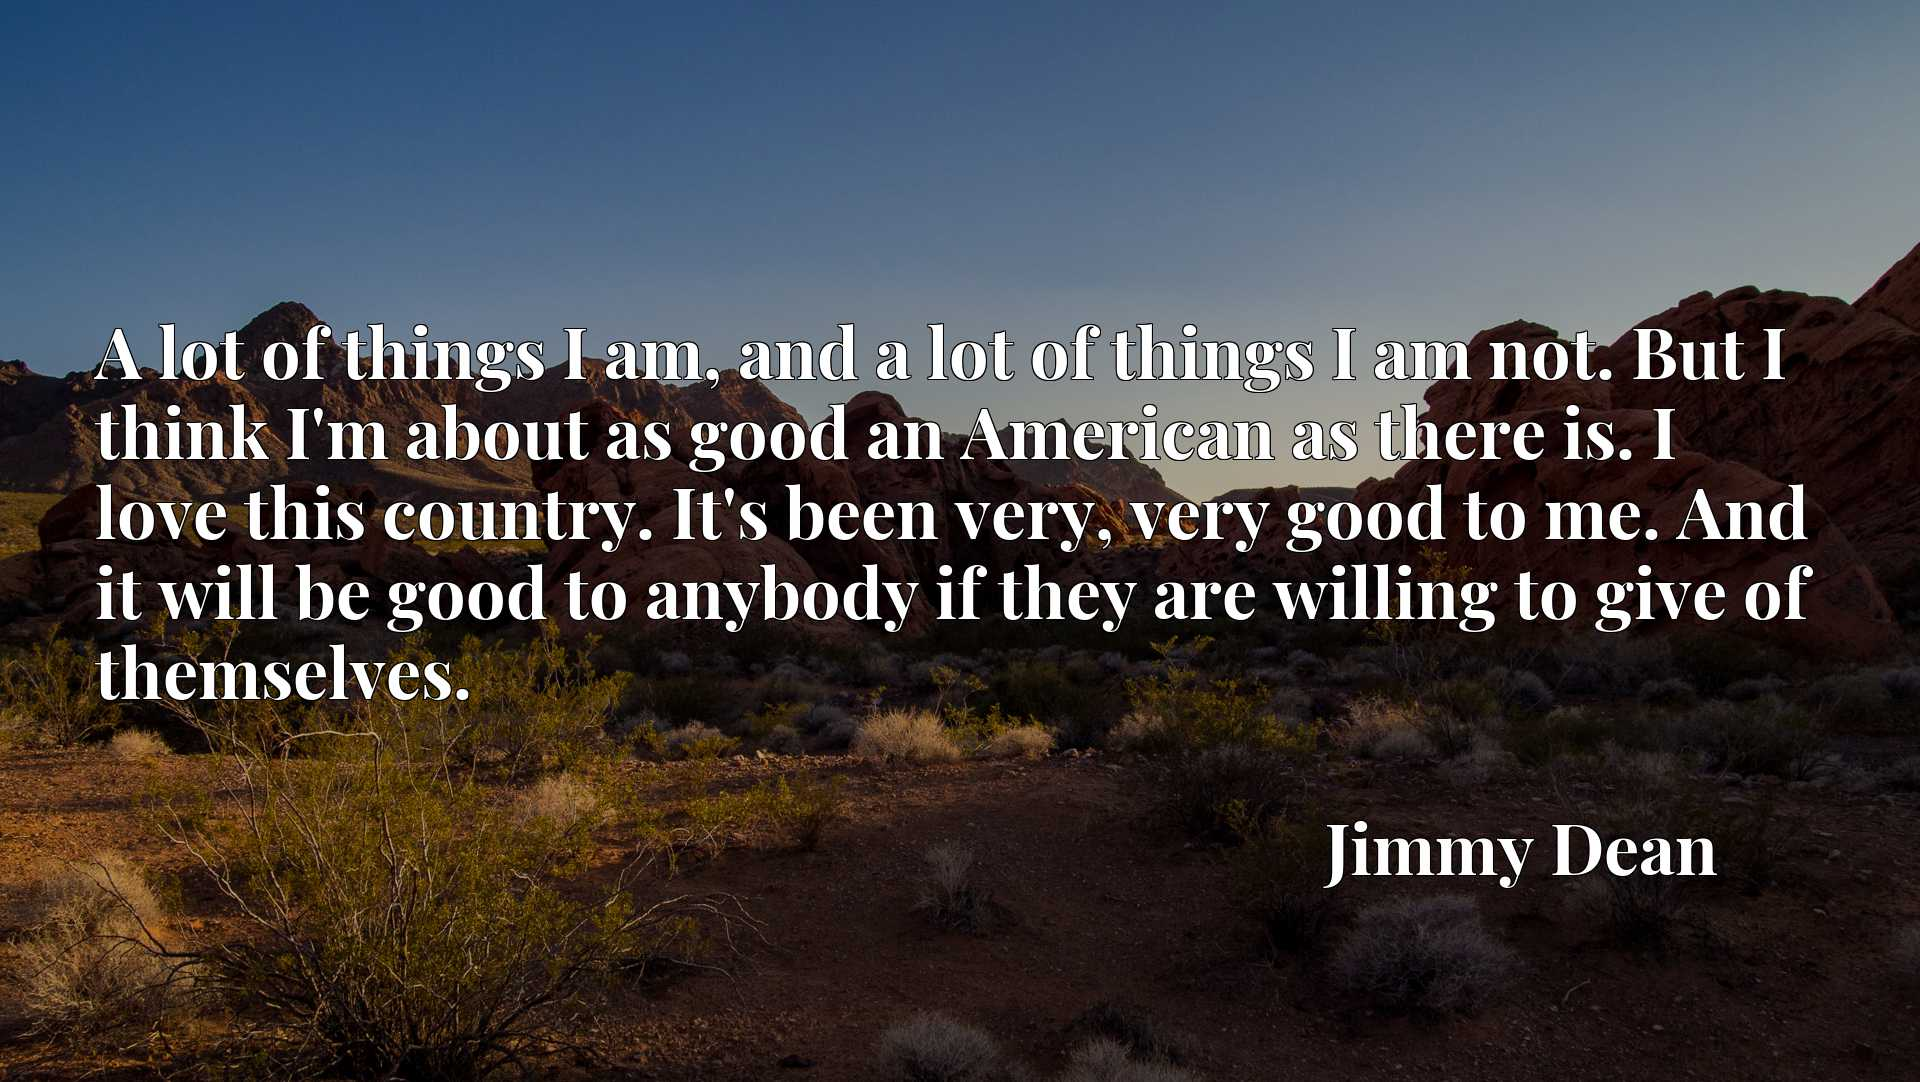 Quote Picture :A lot of things I am, and a lot of things I am not. But I think I'm about as good an American as there is. I love this country. It's been very, very good to me. And it will be good to anybody if they are willing to give of themselves.